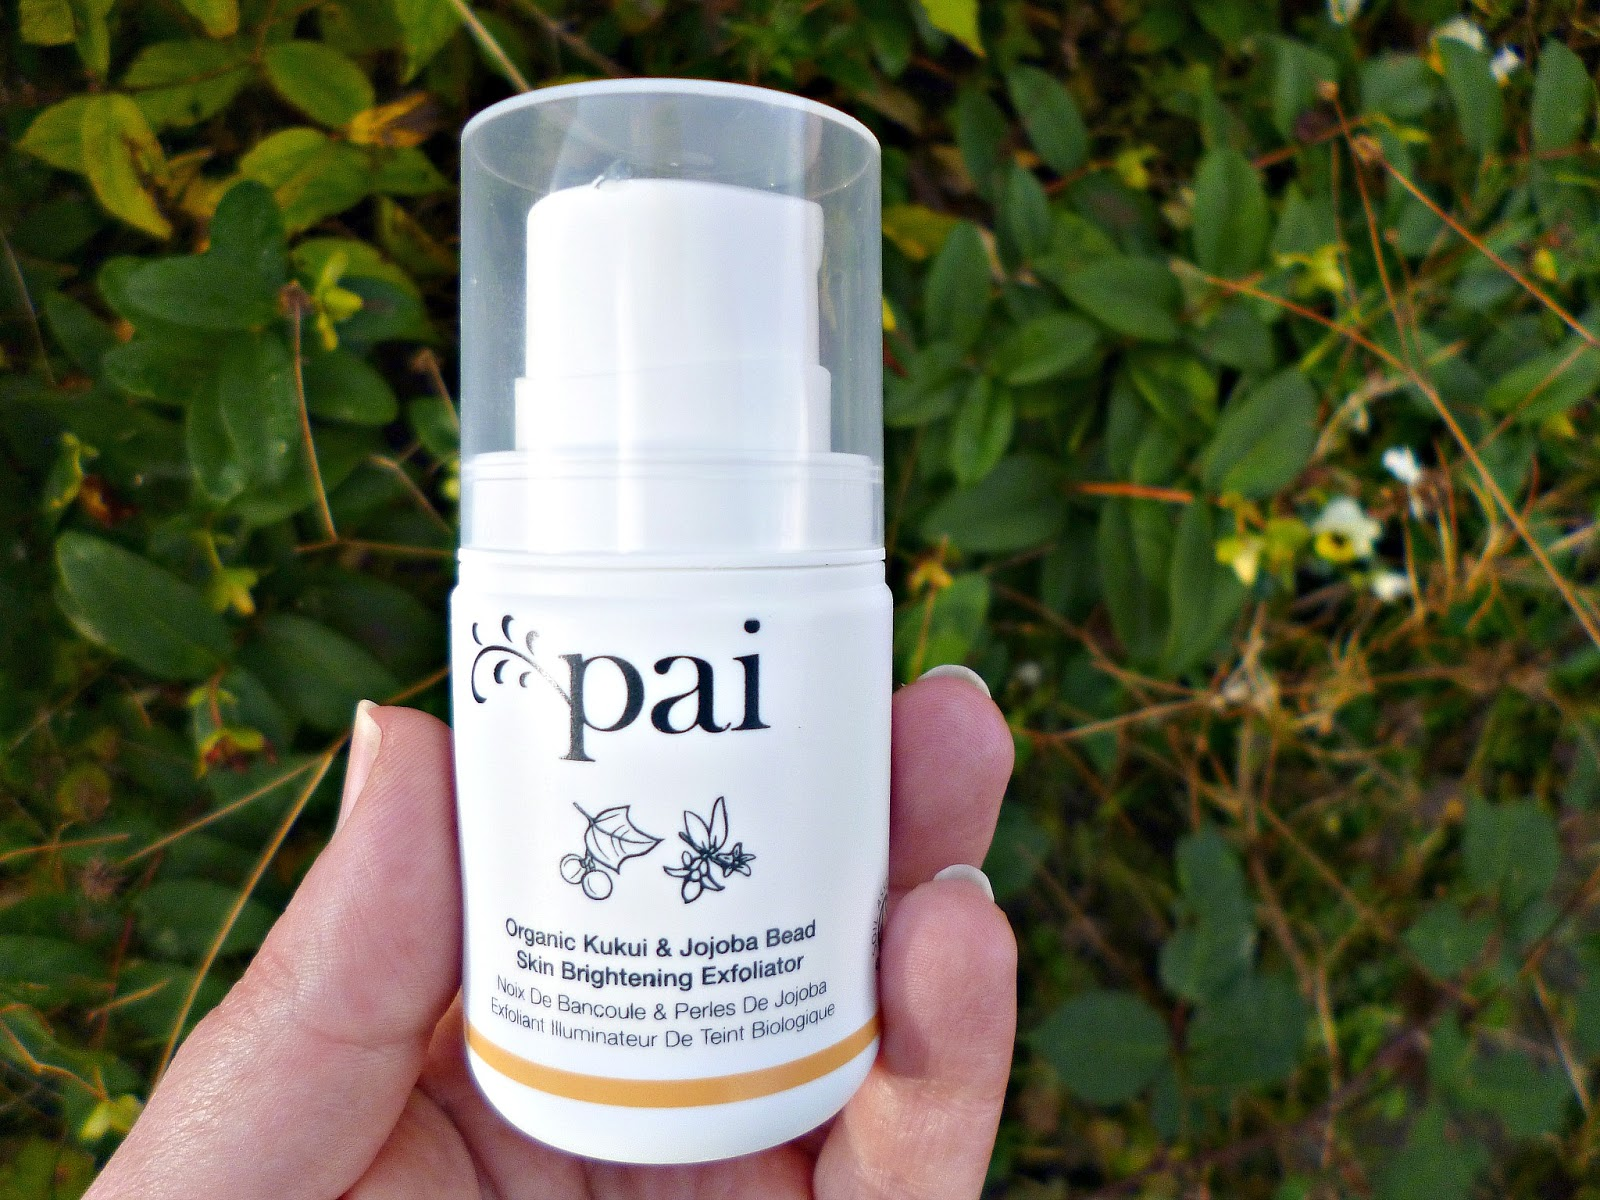 At home facial with the Pai Kukui and Jojoba bead brightening exfoliator